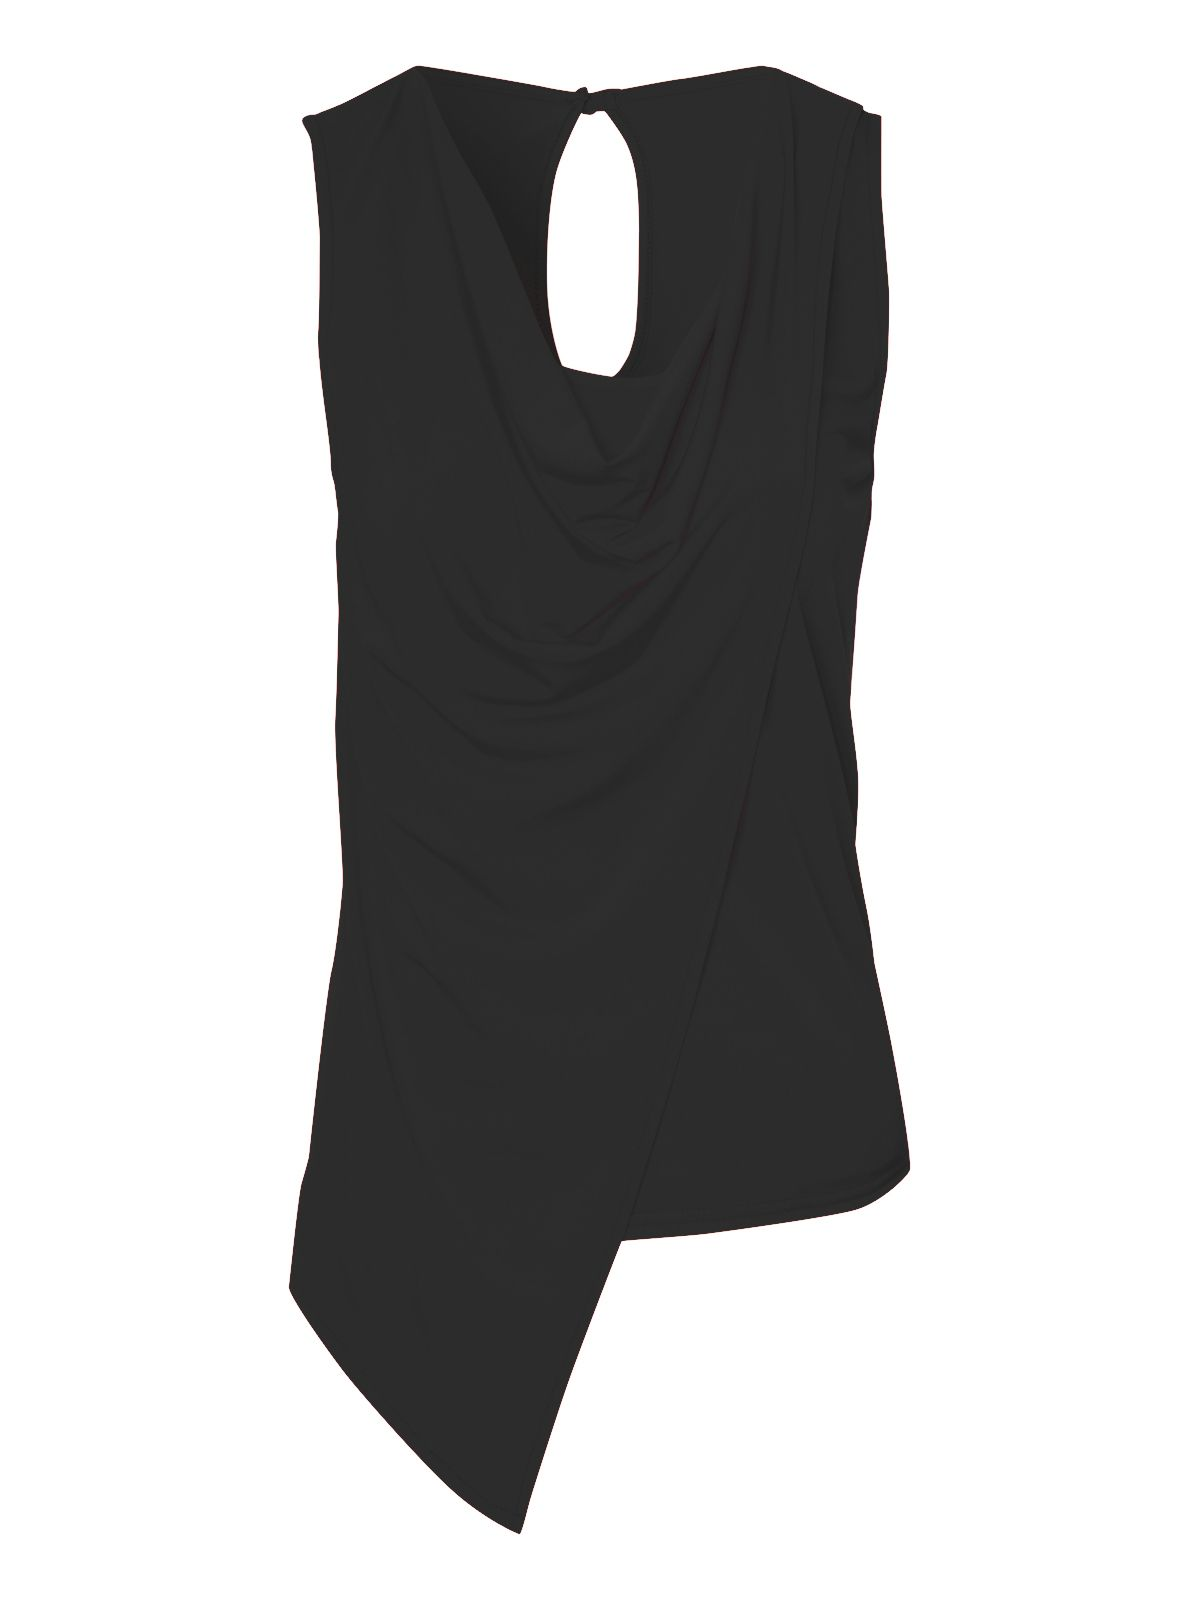 Asymmetric cowl neck sleeveless top